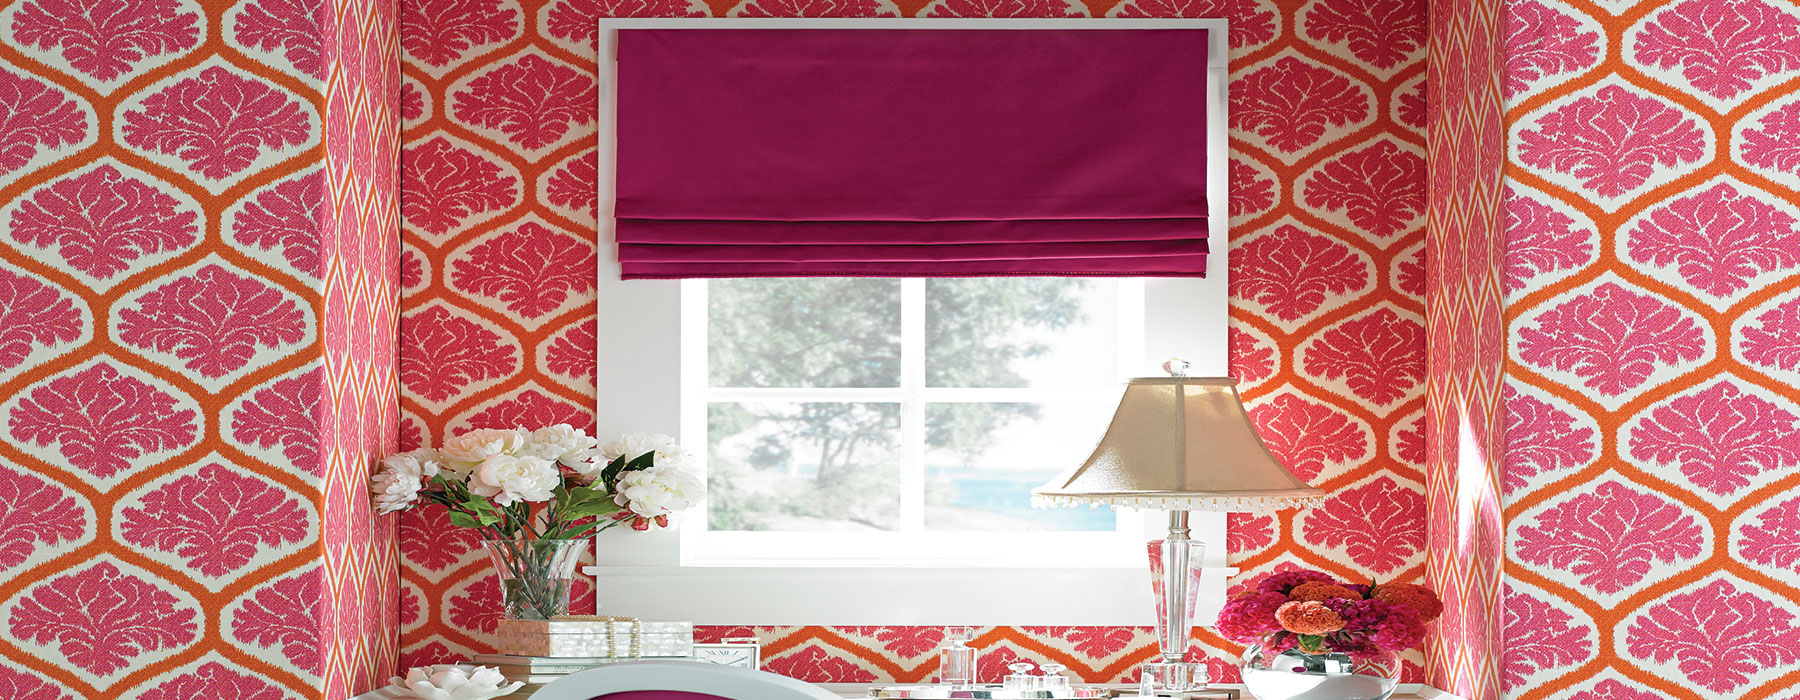 Expertly installed Roman Shades